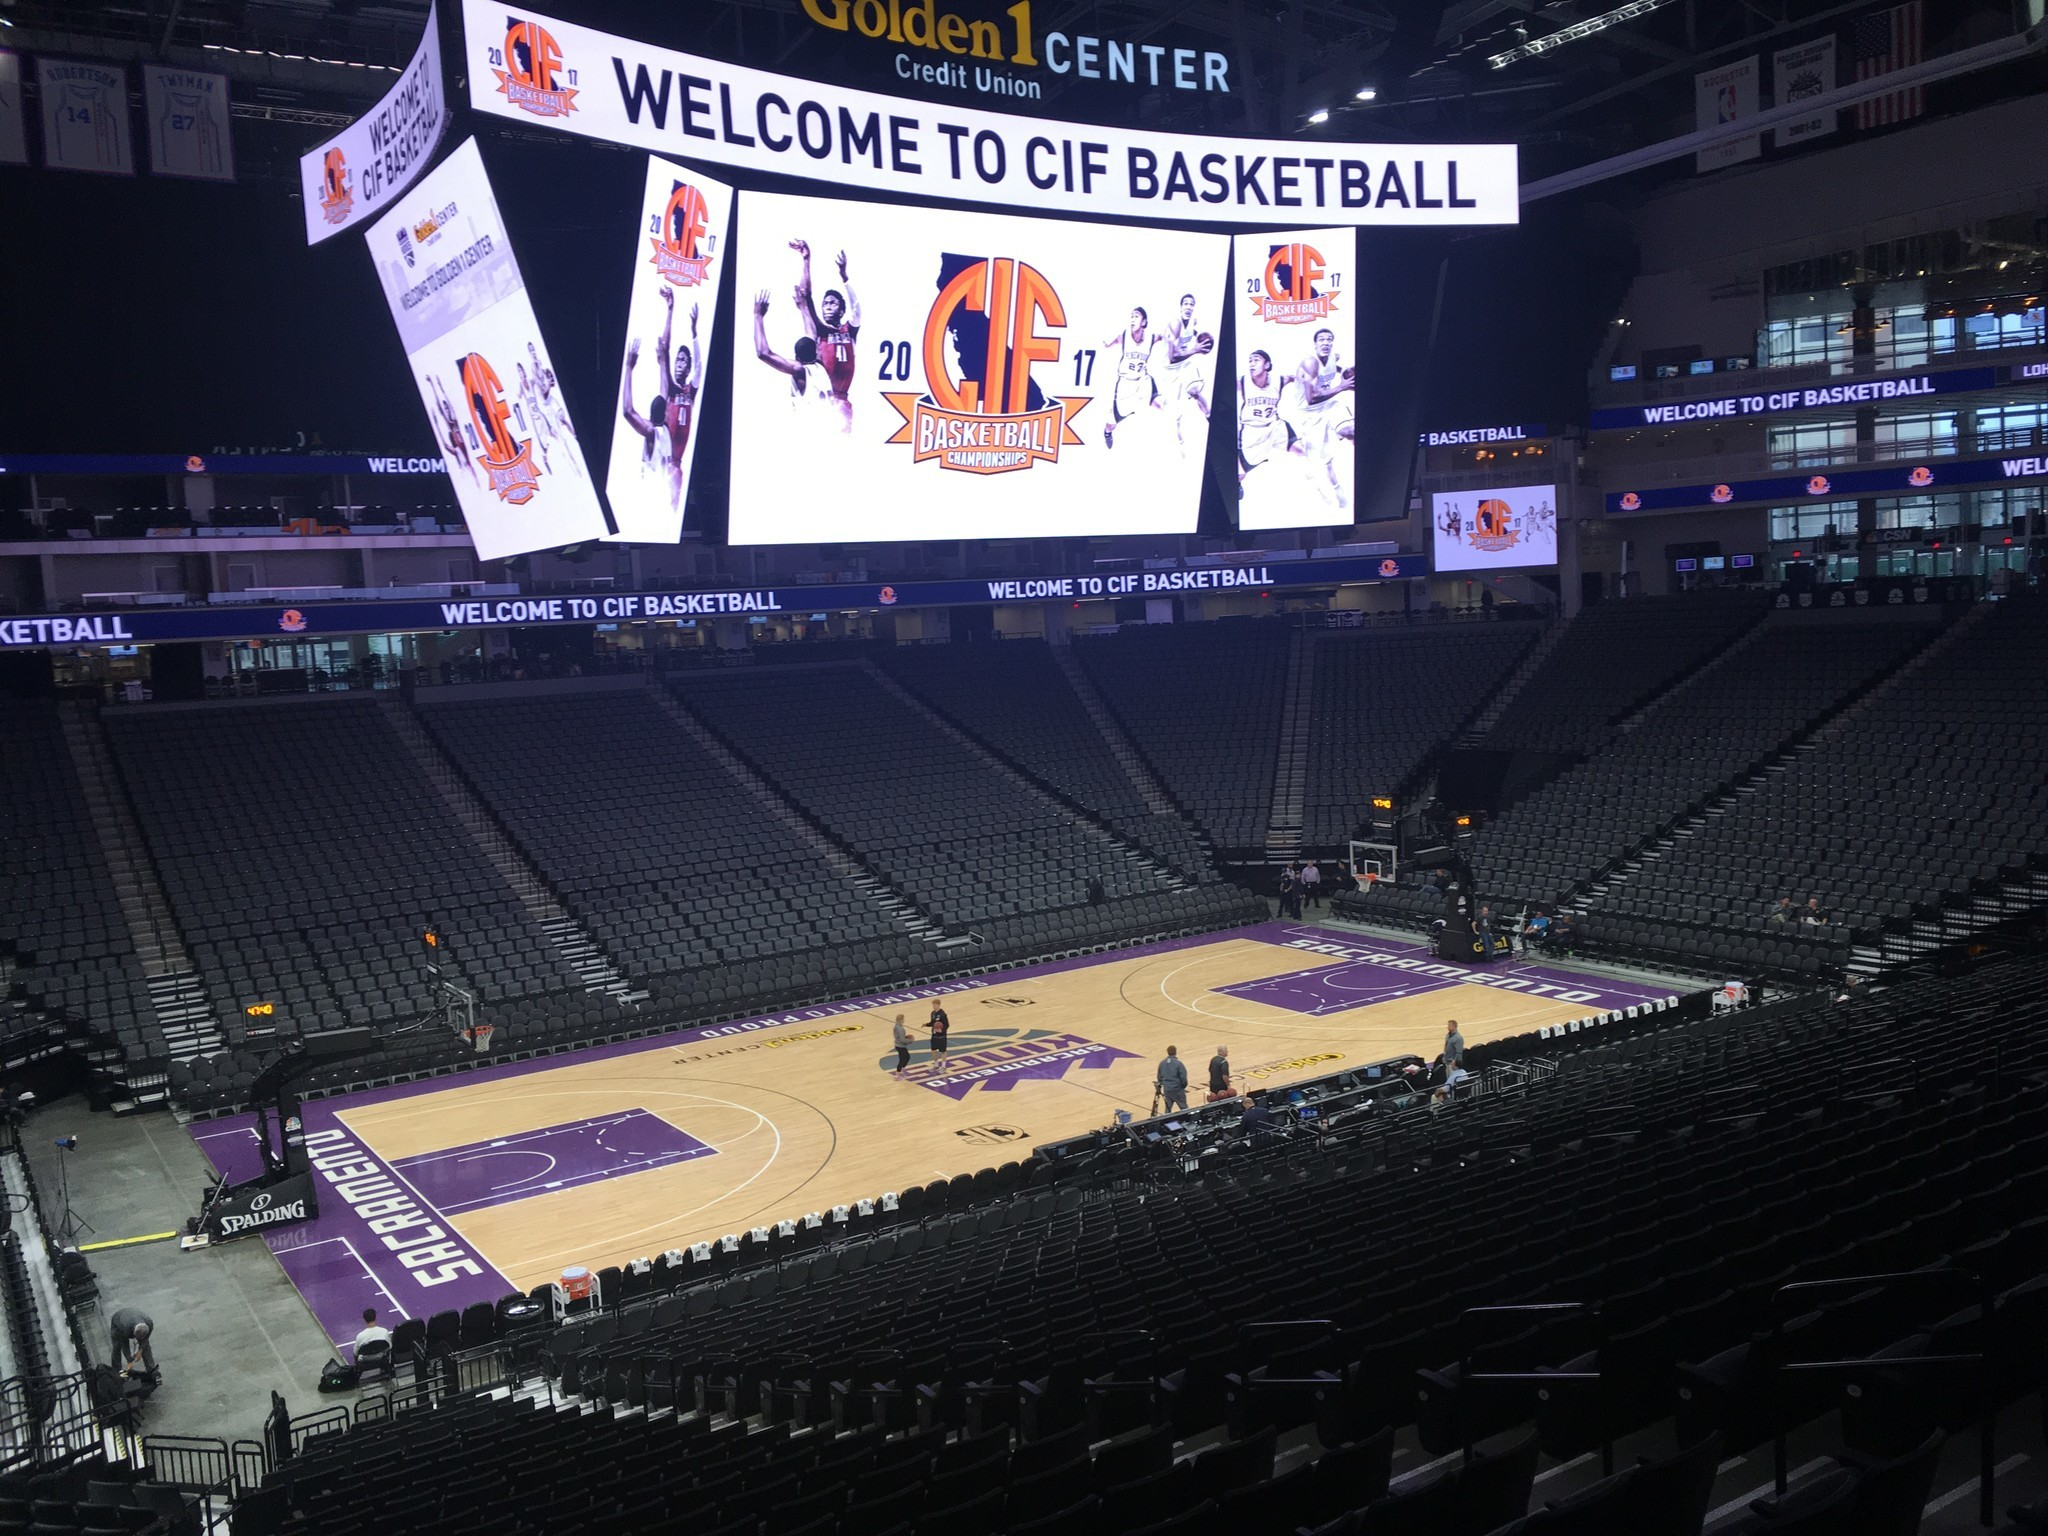 Inside the Golden 1 Center in Sacramento